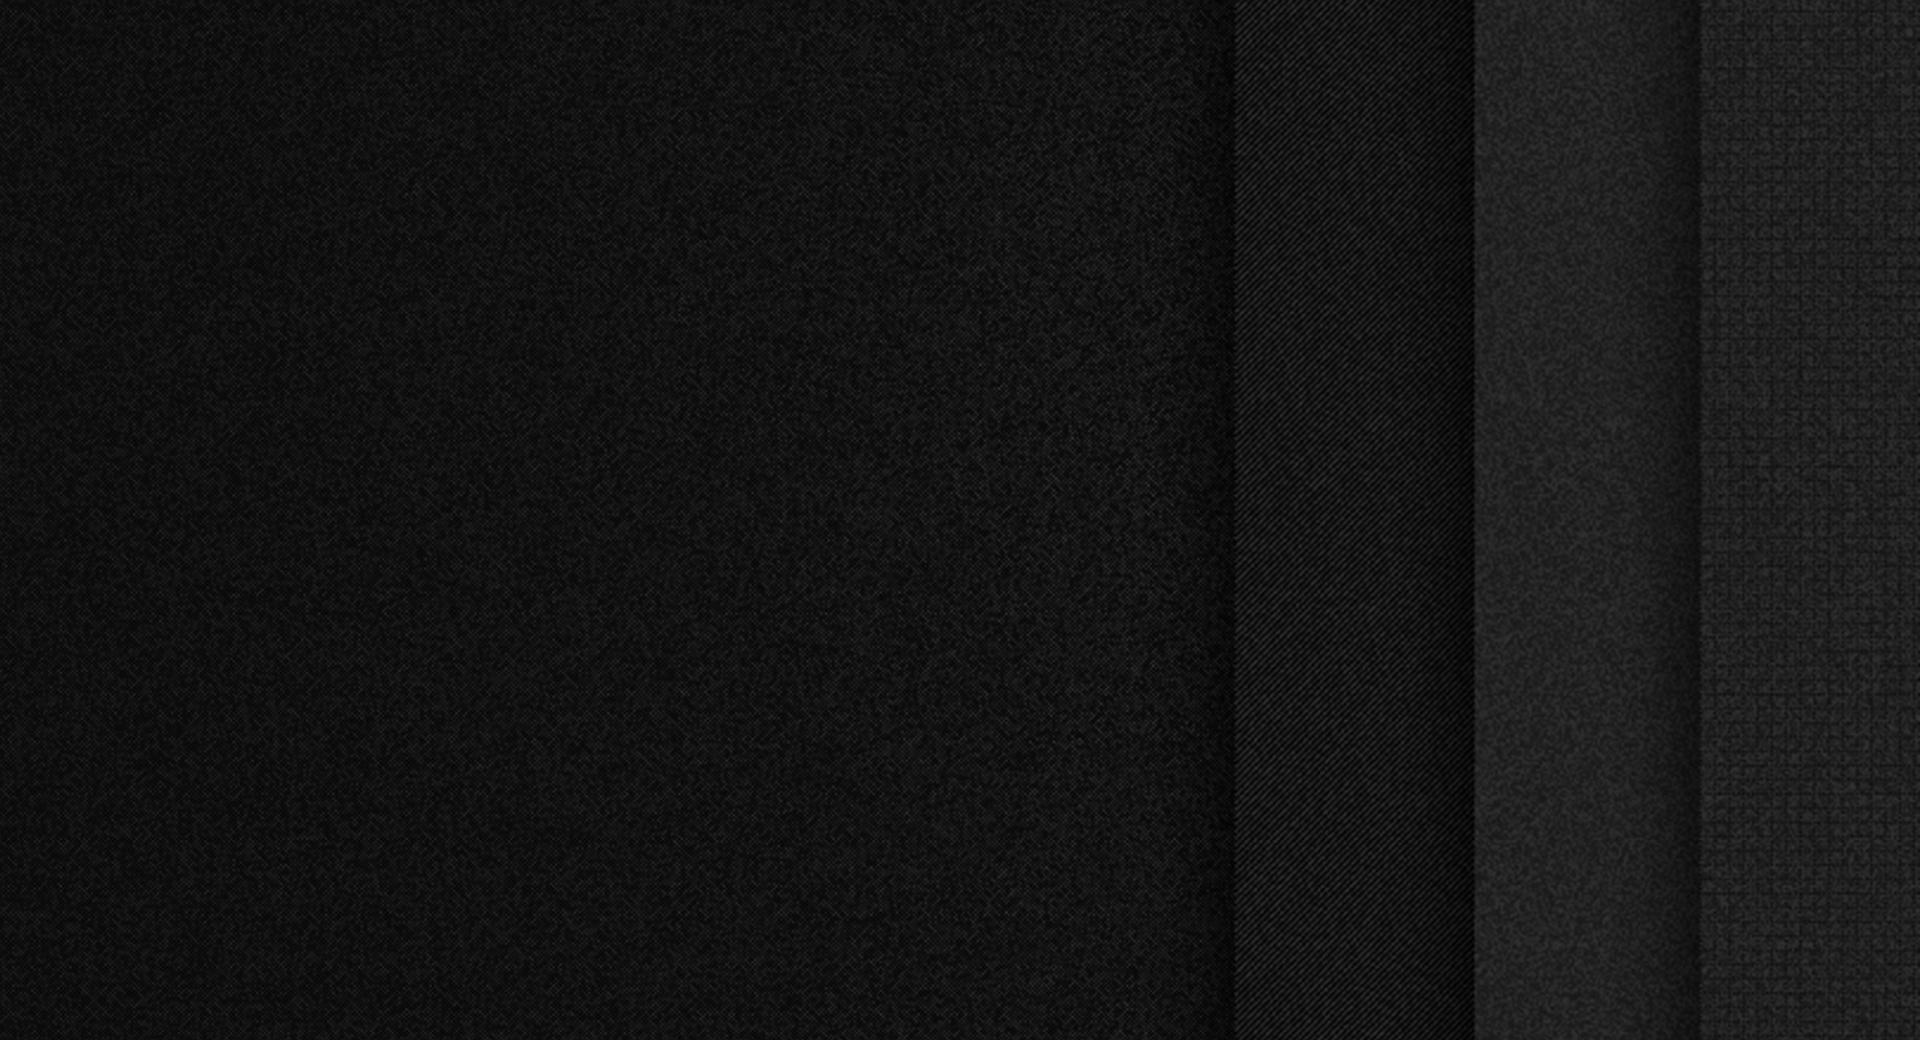 Black Fabric Texture wallpapers HD quality